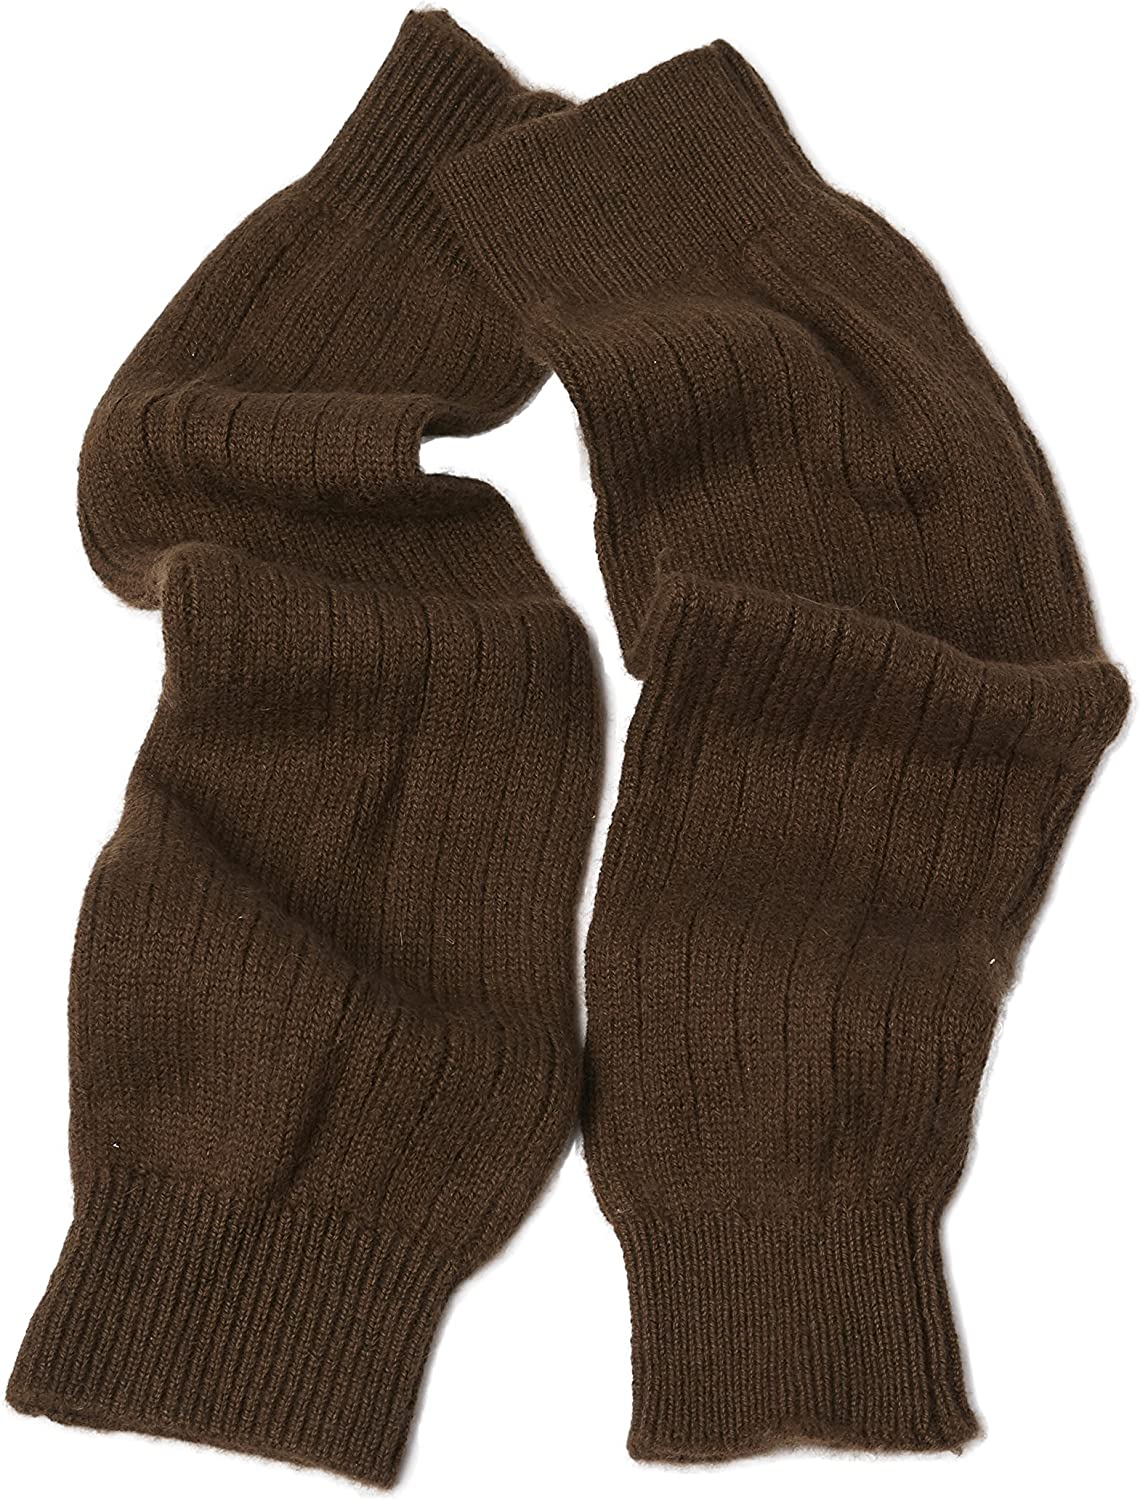 Cashmere Boutique: 100% Award Pure Long-awaited Leg 6 Colors Warmers One